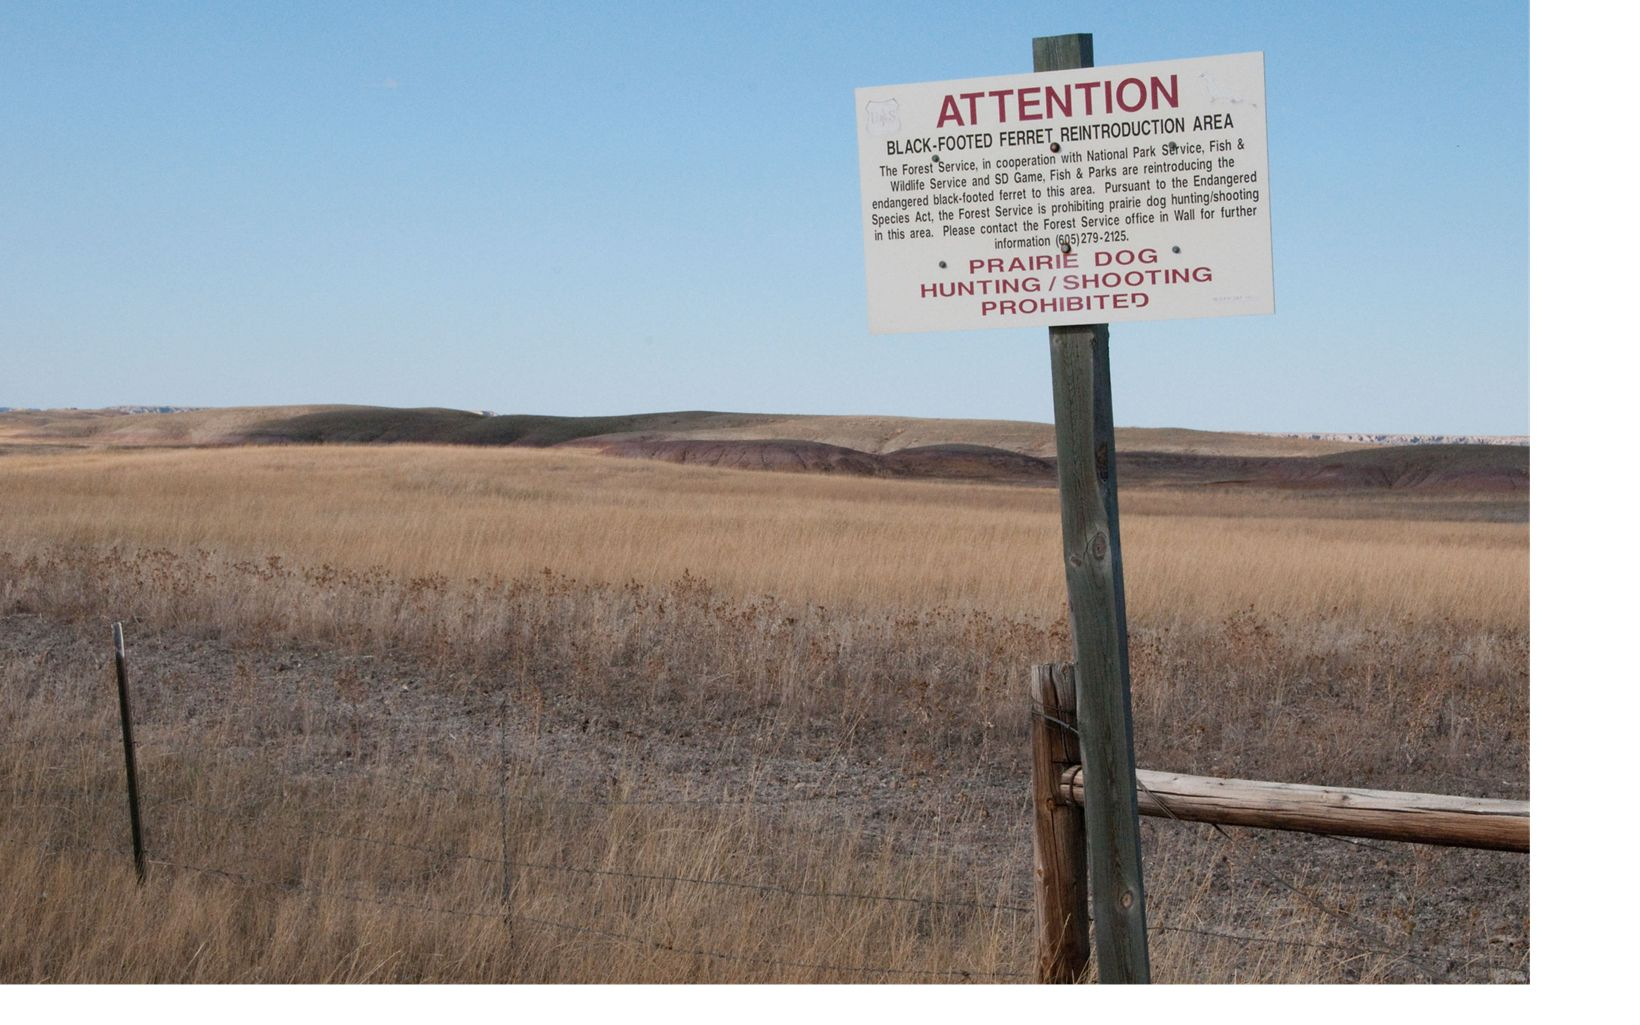 reintroduction area sign and grasslands in the Conata Basin, South Dakota.